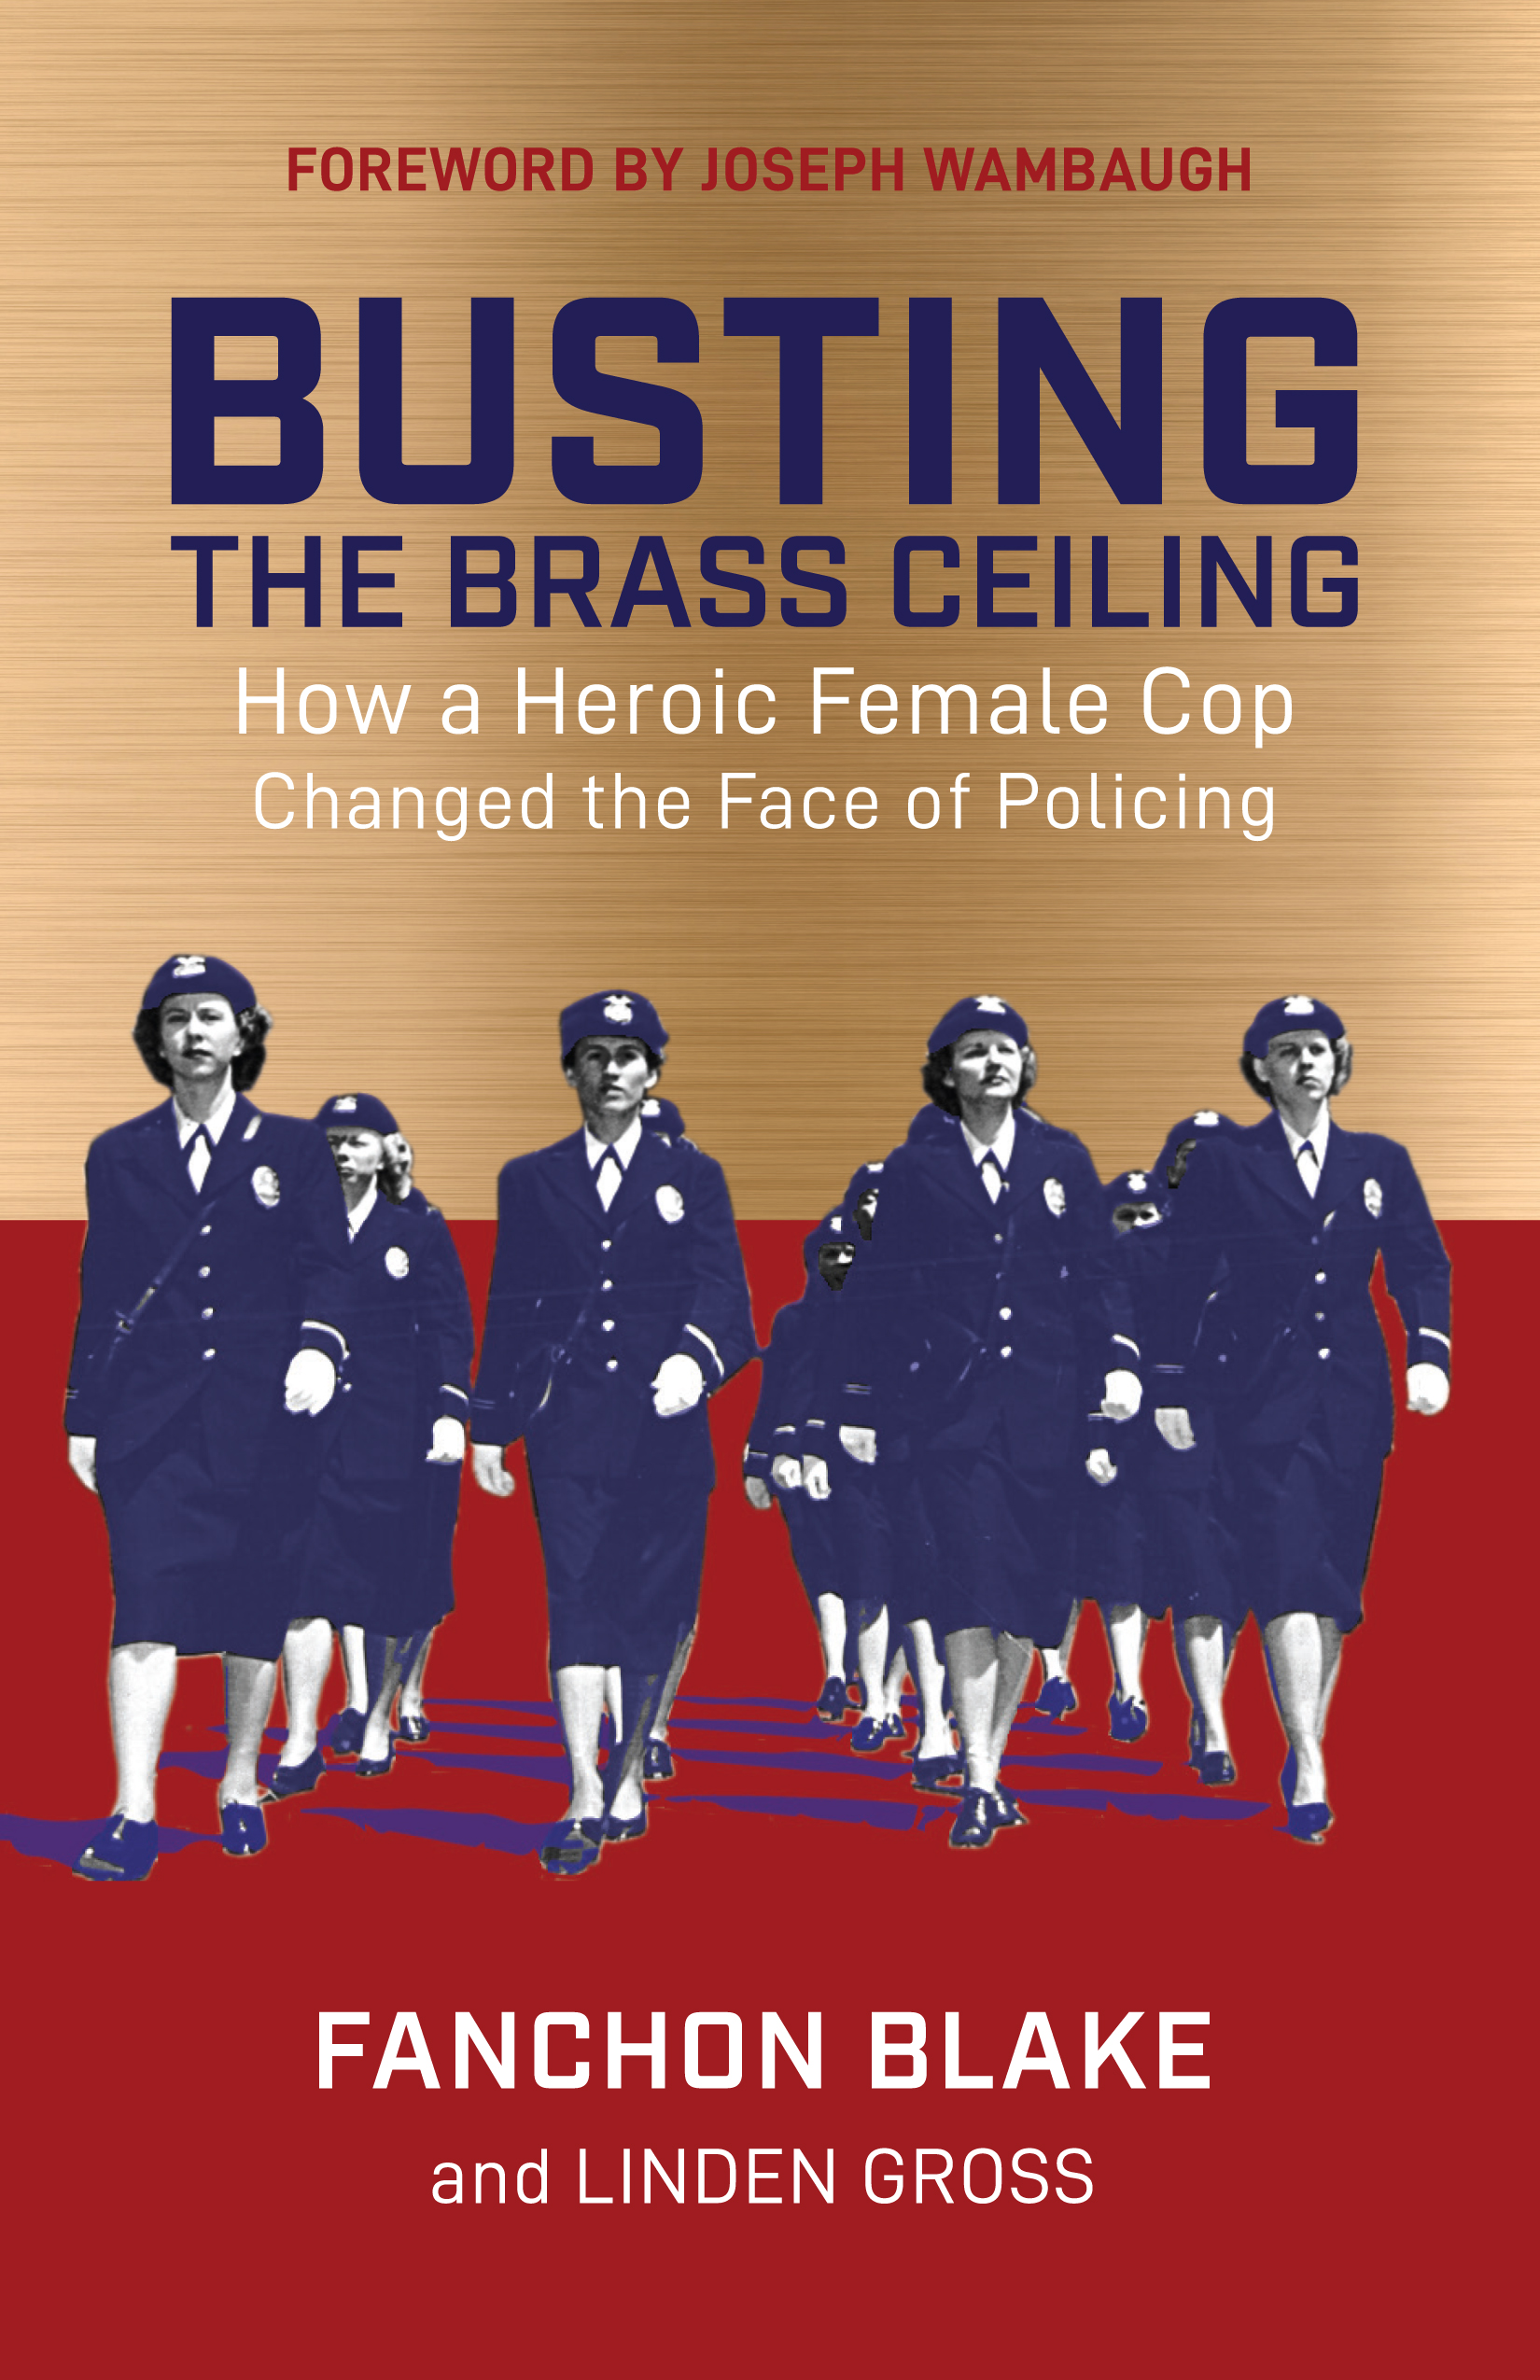 BustingBrassCeiling-eBook-Cover_for publication